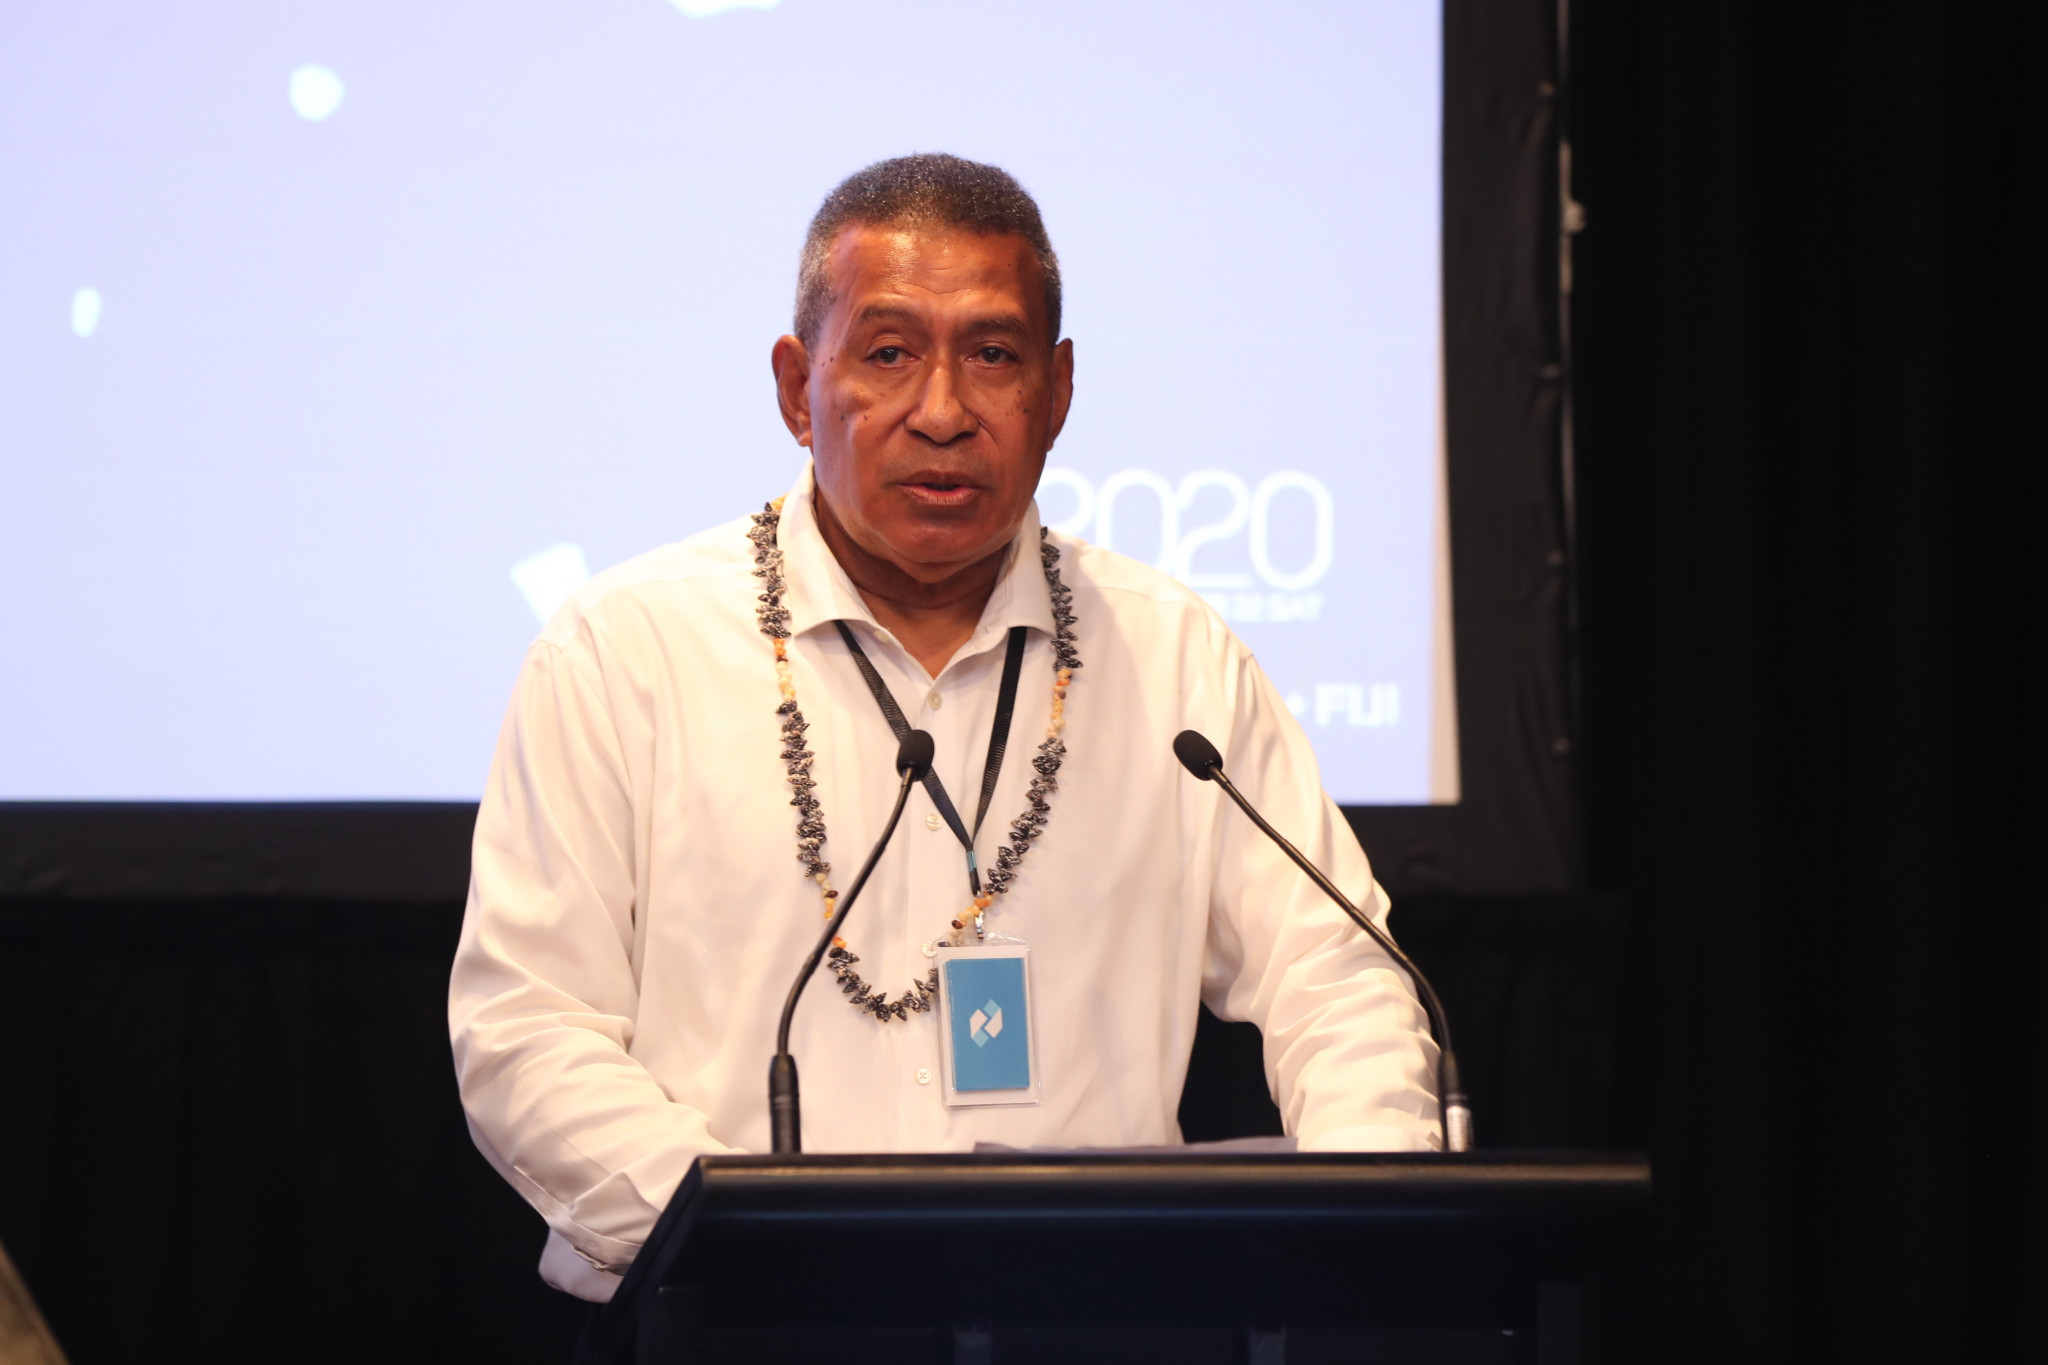 FABA President Baravilala appeals to AIBA for separate Oceania Olympic qualifying event